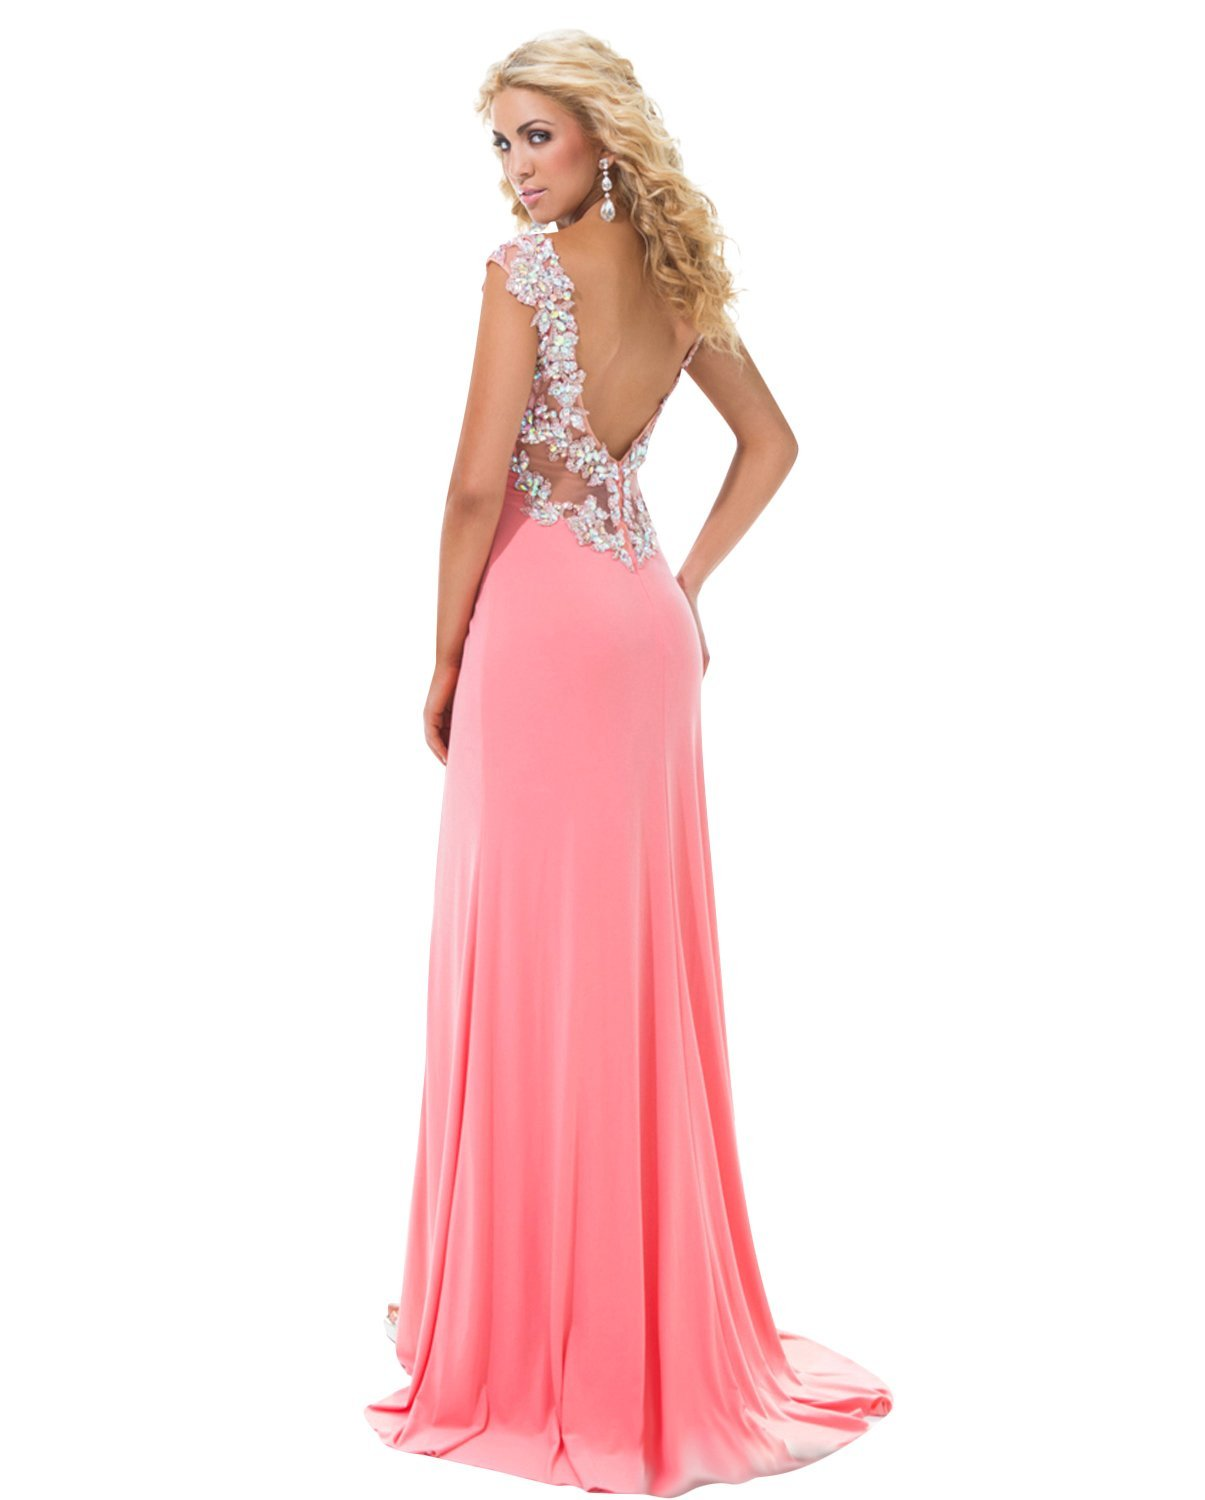 Contemporary Prom Dresses Fort Wayne Pictures - Wedding Dresses ...